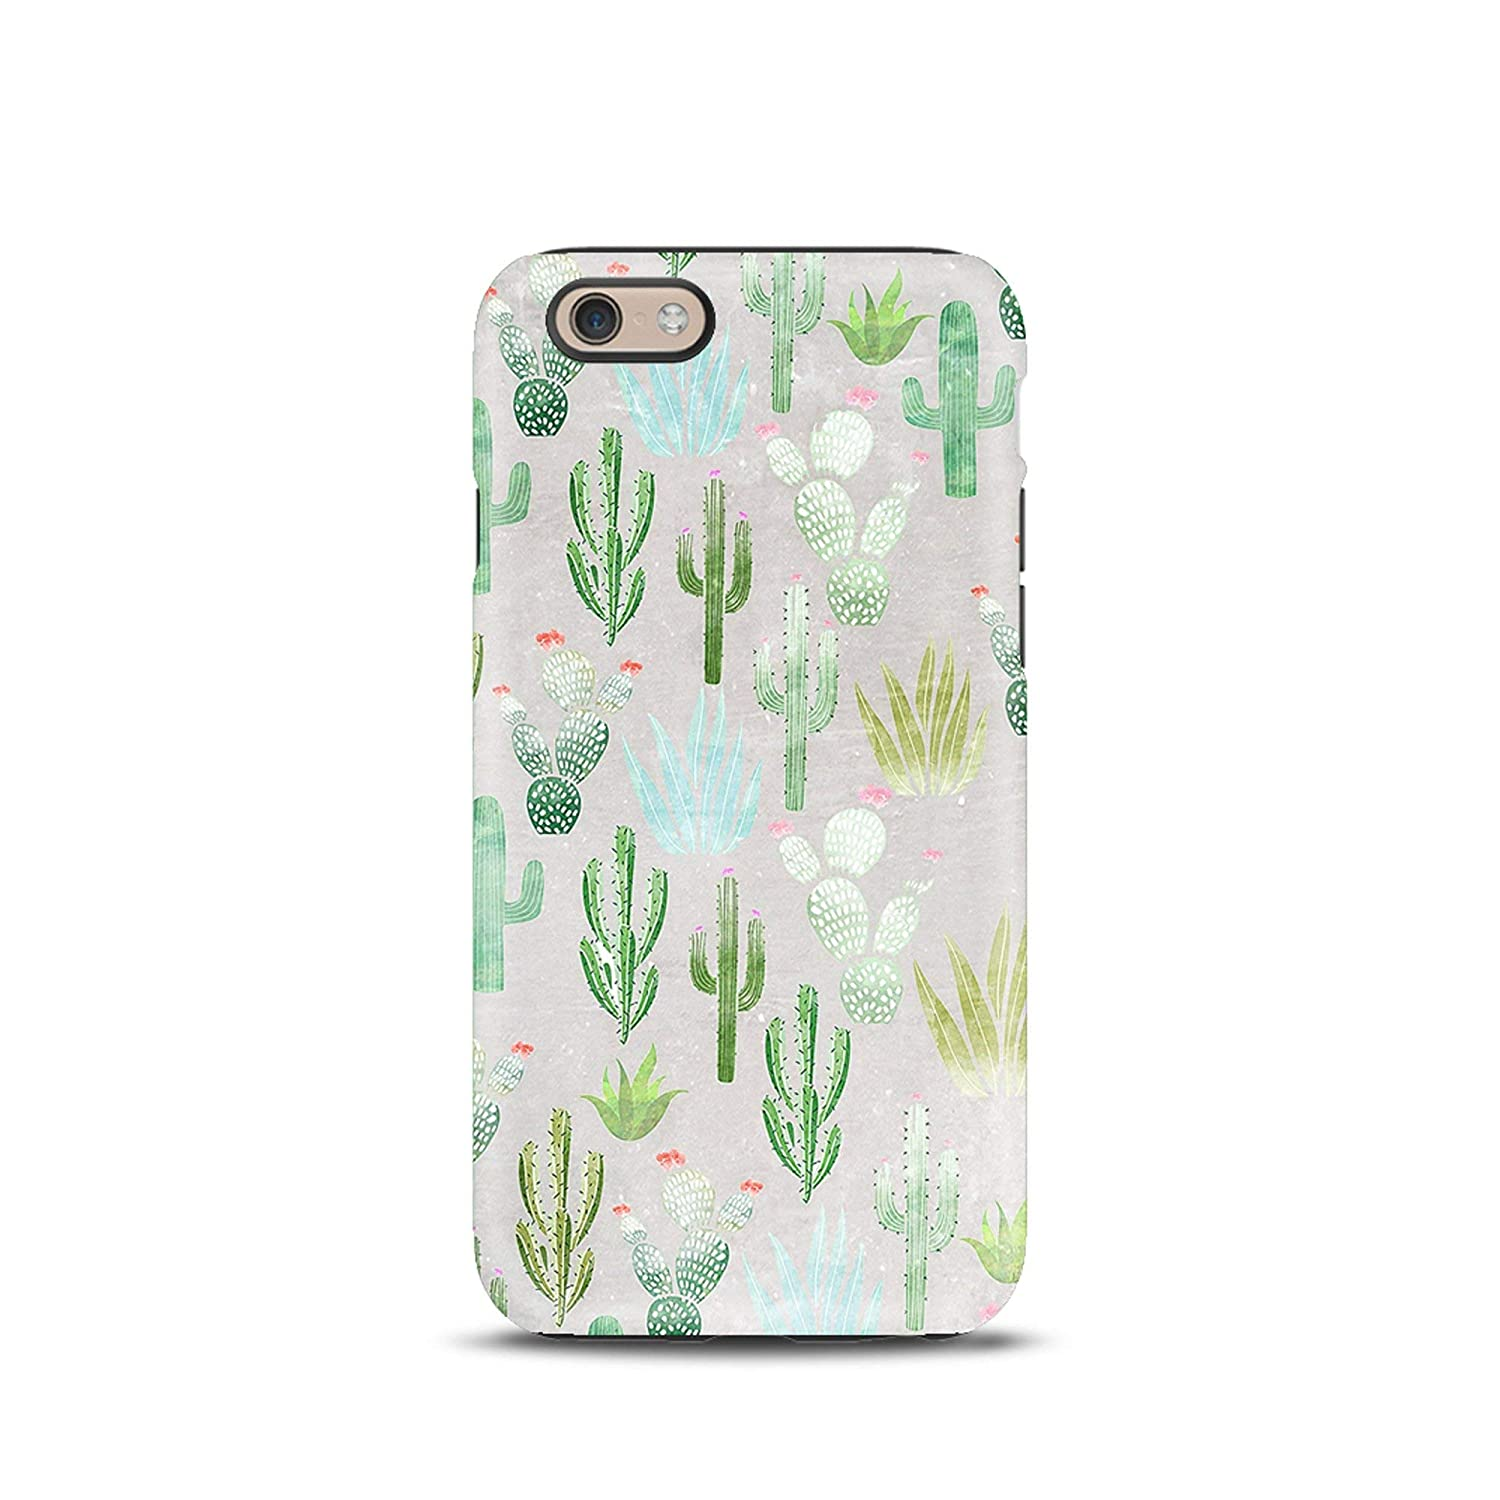 Cactus Floral Flowers cover case TPU Tough for iPhone 5, 5s, 6, 6s, 7, 7 plus, 8, 8 plus, X, XS, for Galaxy S6, S7, S8